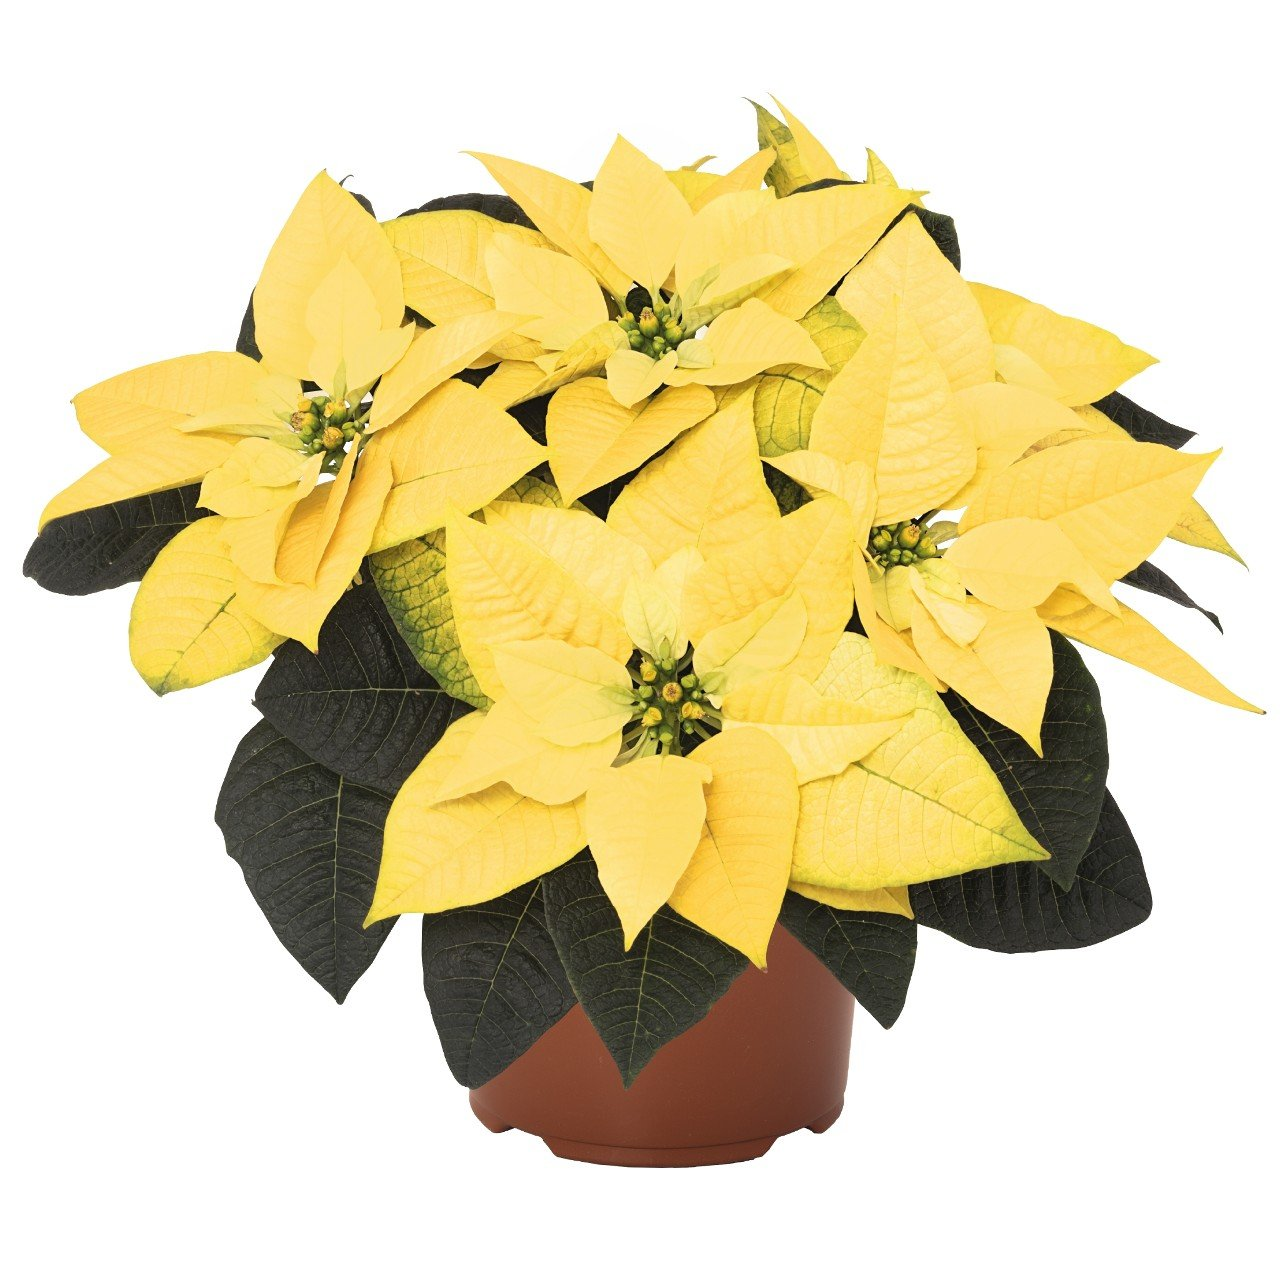 Golden Glow Poinsettia Christmas Holiday Flower